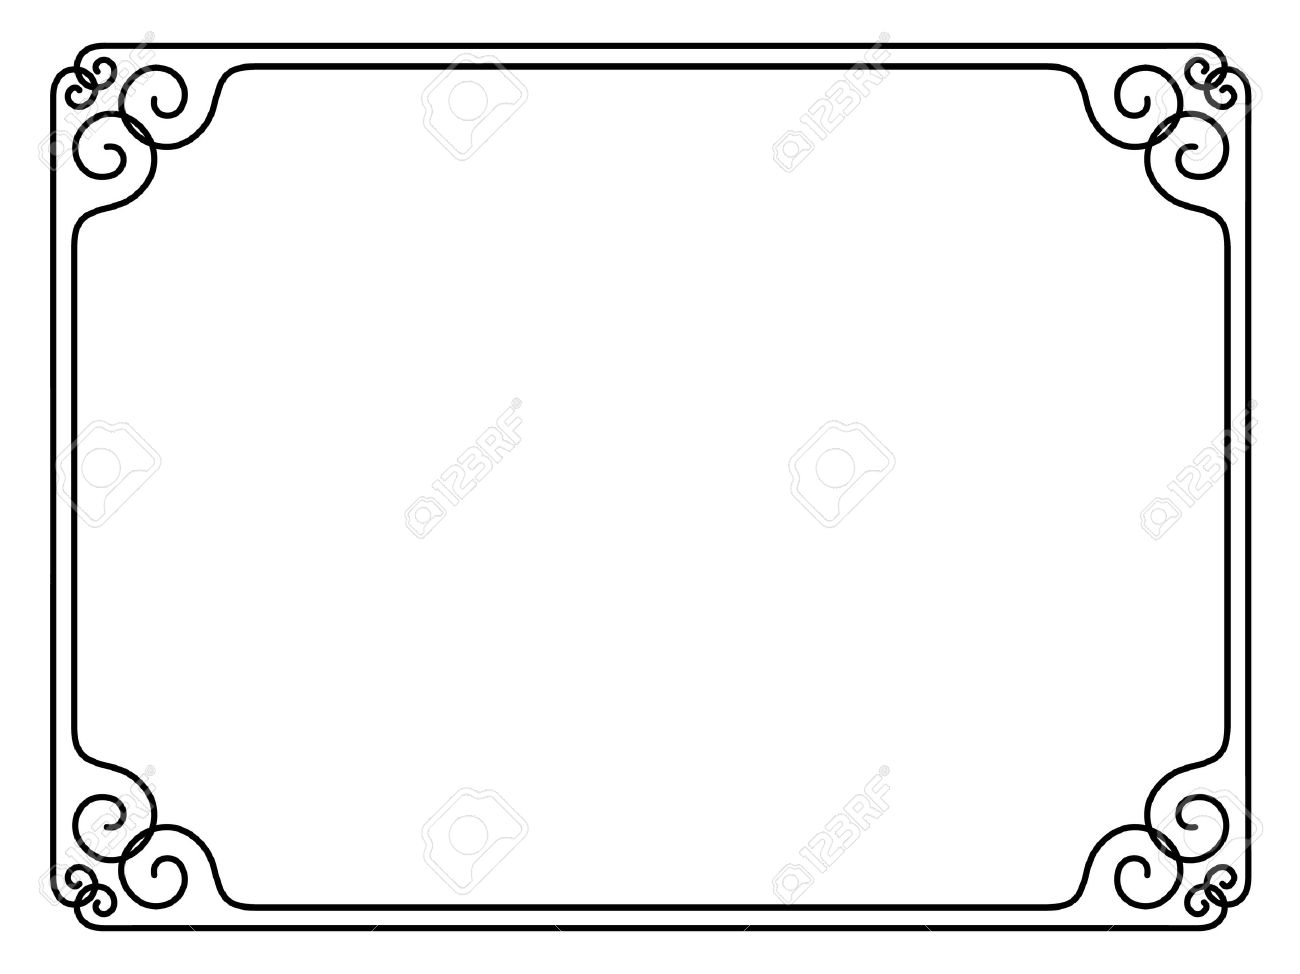 Vector simple calligraph ornamental decorative frame pattern Stock Vector - 11976228